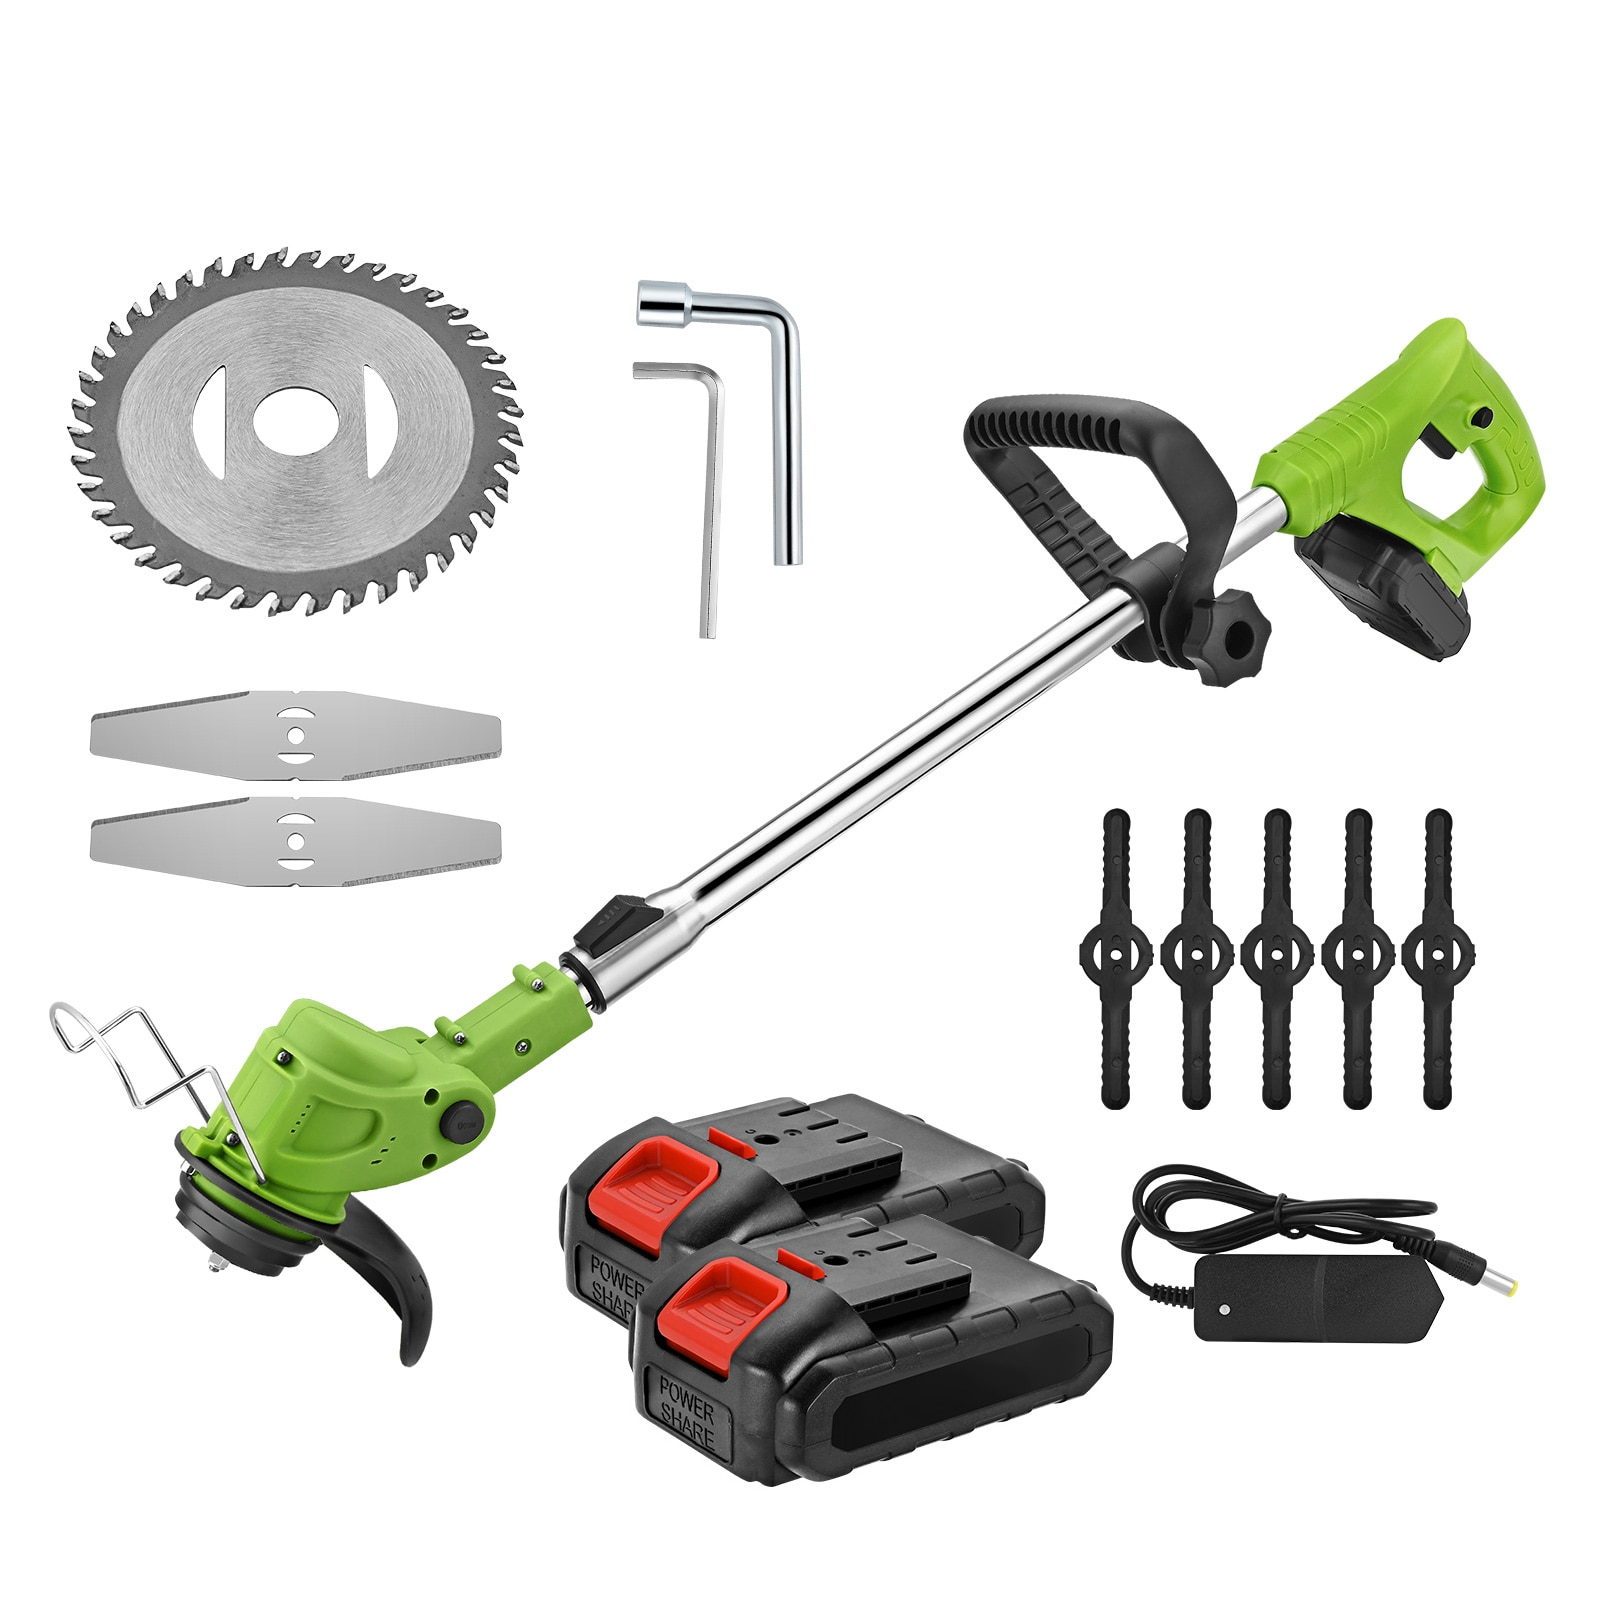 Electric Cordless Hedge Trimmer for Grass Brush Cutter Lawn Mower 21V Li-ion Battery 180° Head Angle Telescopic Pole Garden Tool